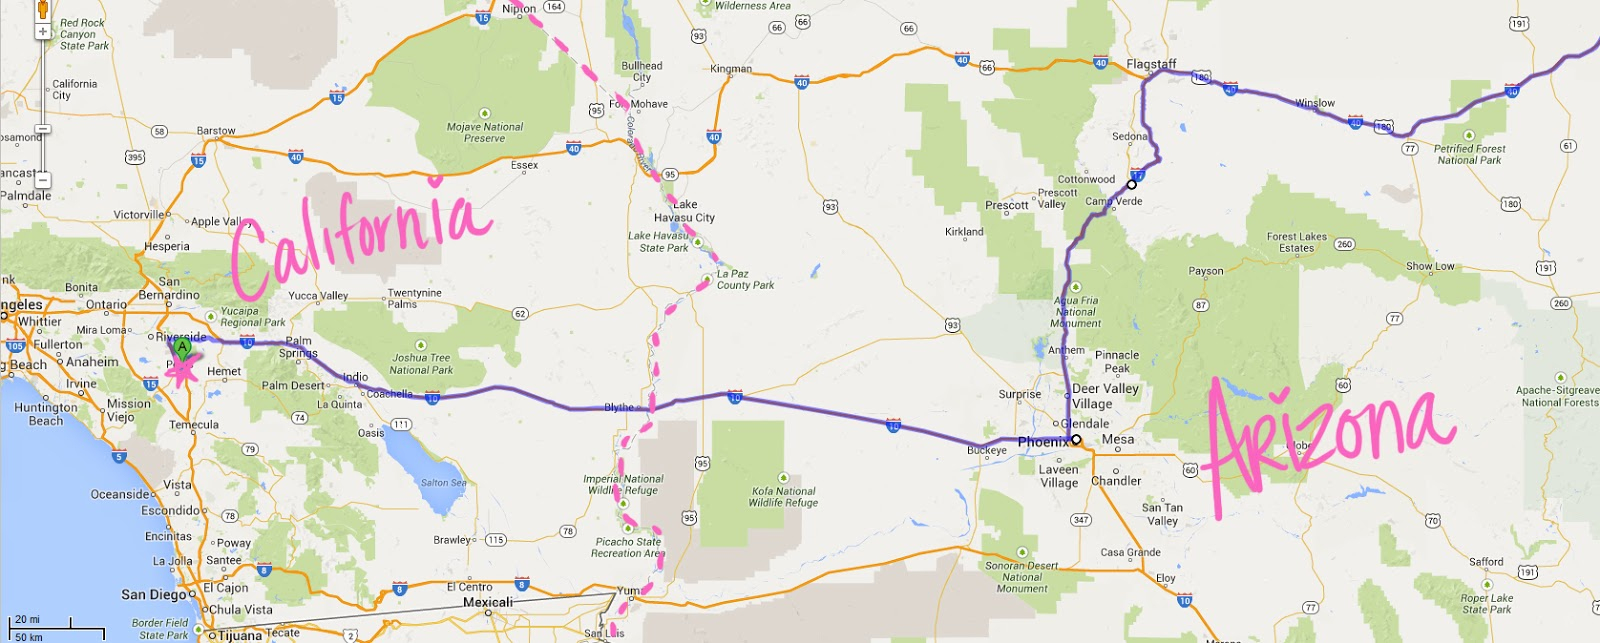 Map From Texas To California - Klipy - Road Map From California To Texas